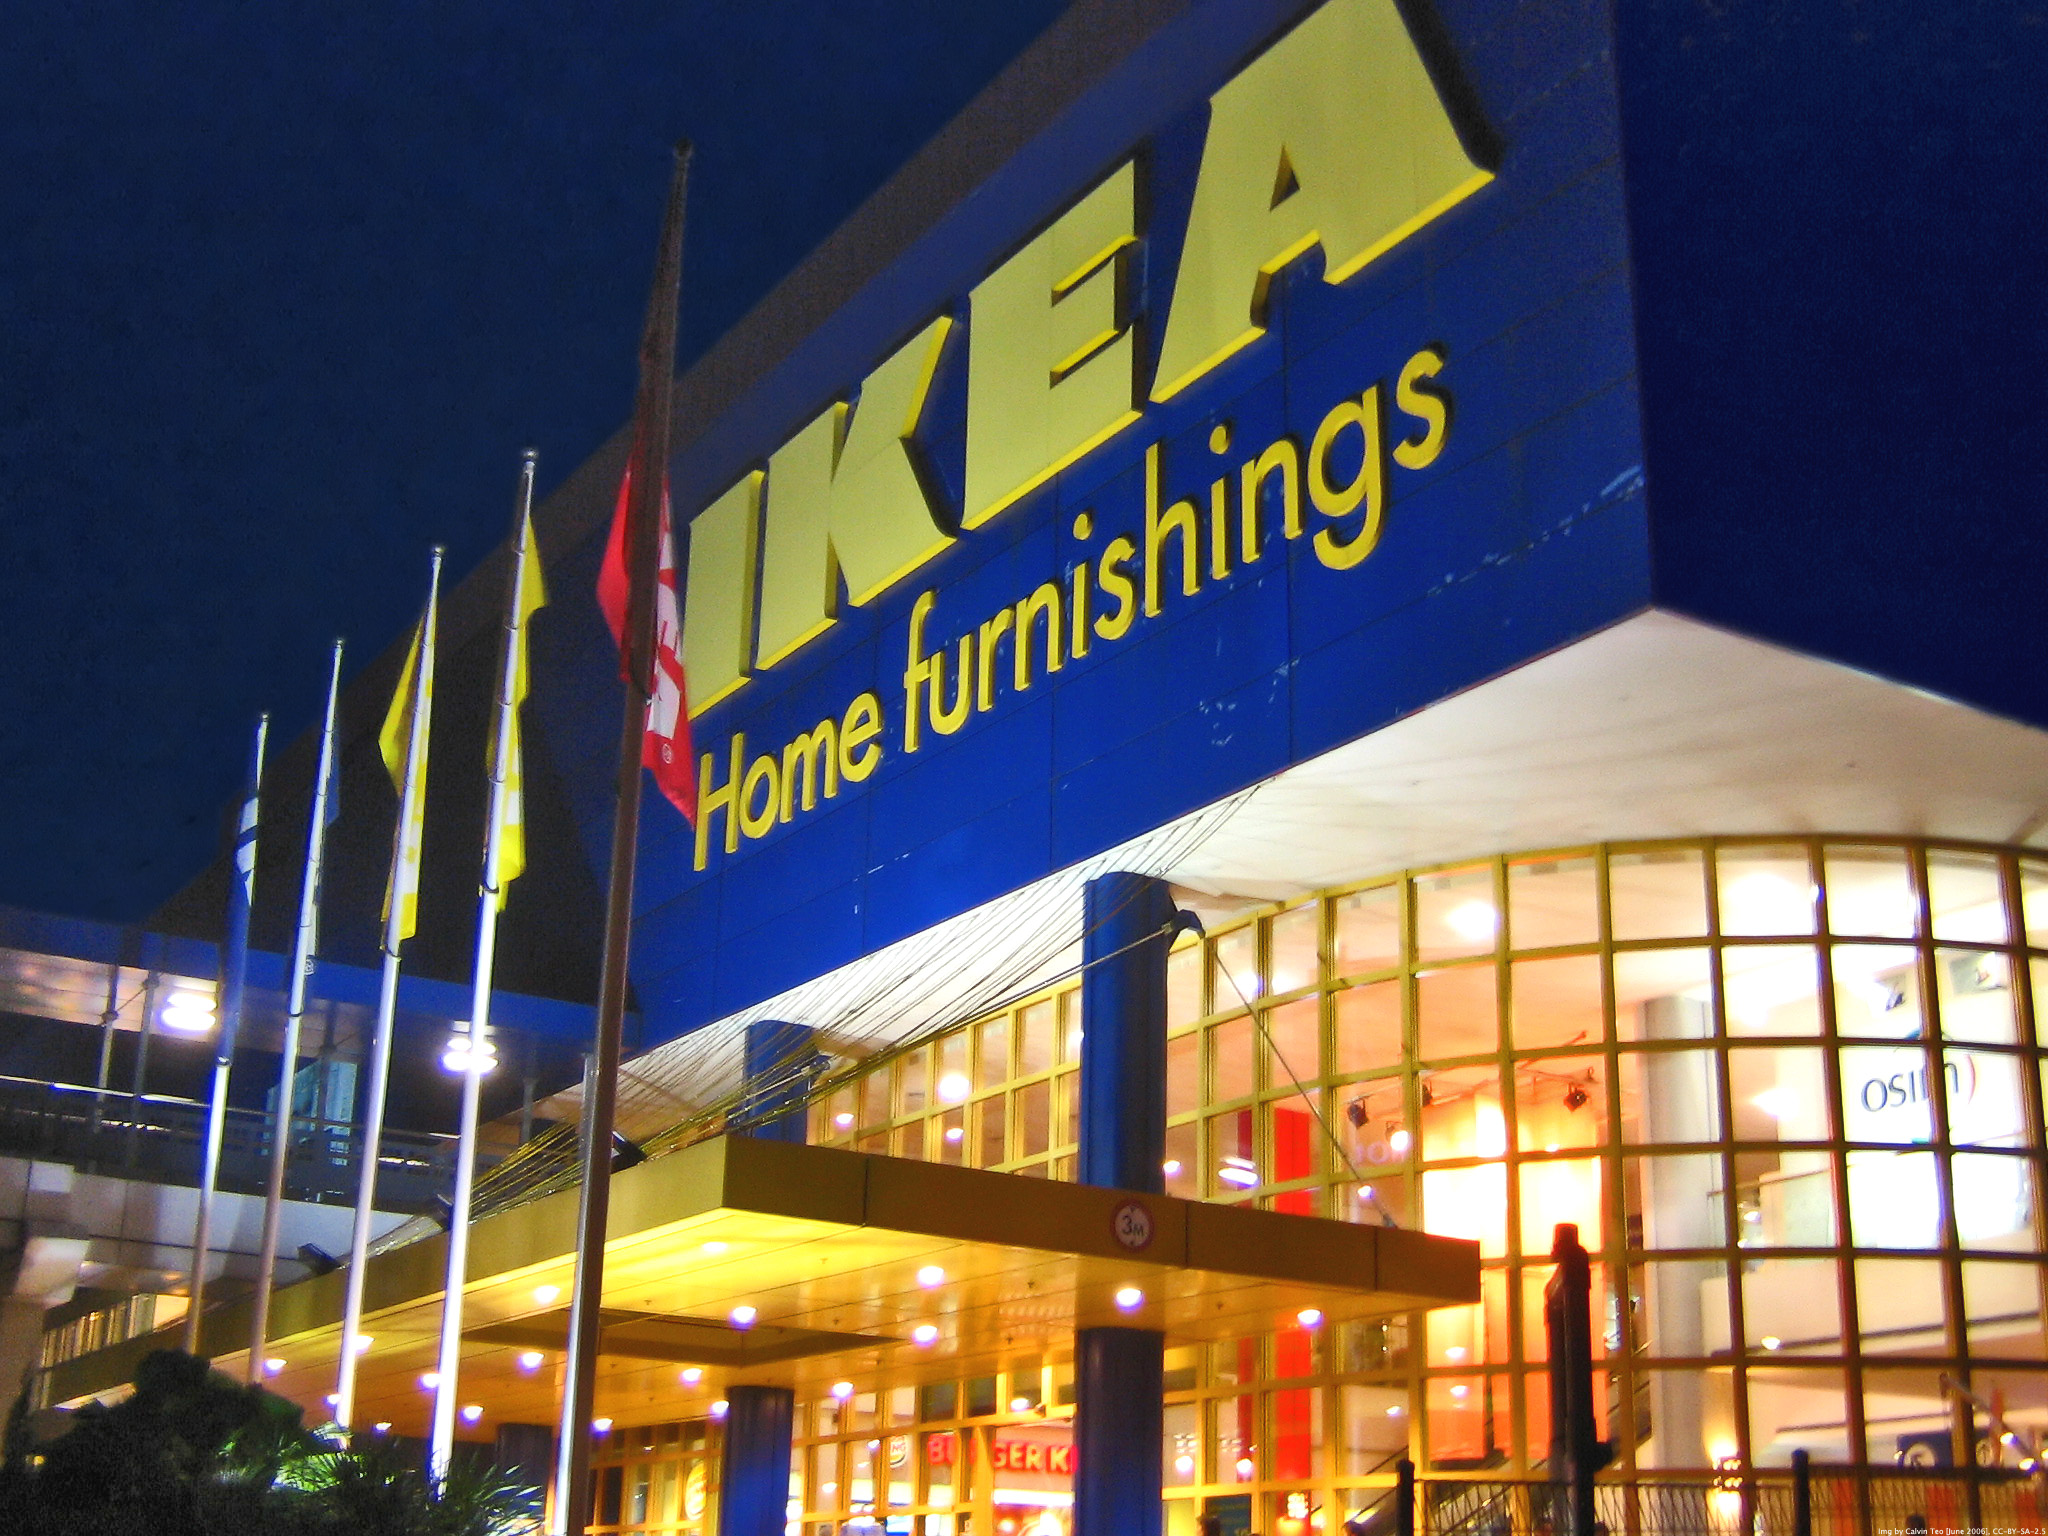 Ingvar Kamprad Elmtaryd Agunnaryd, Or Better Known As IKEA, Is A  Swedish Based Furniture Store That Has Been Supplying The World With  Ready To Assemble ...